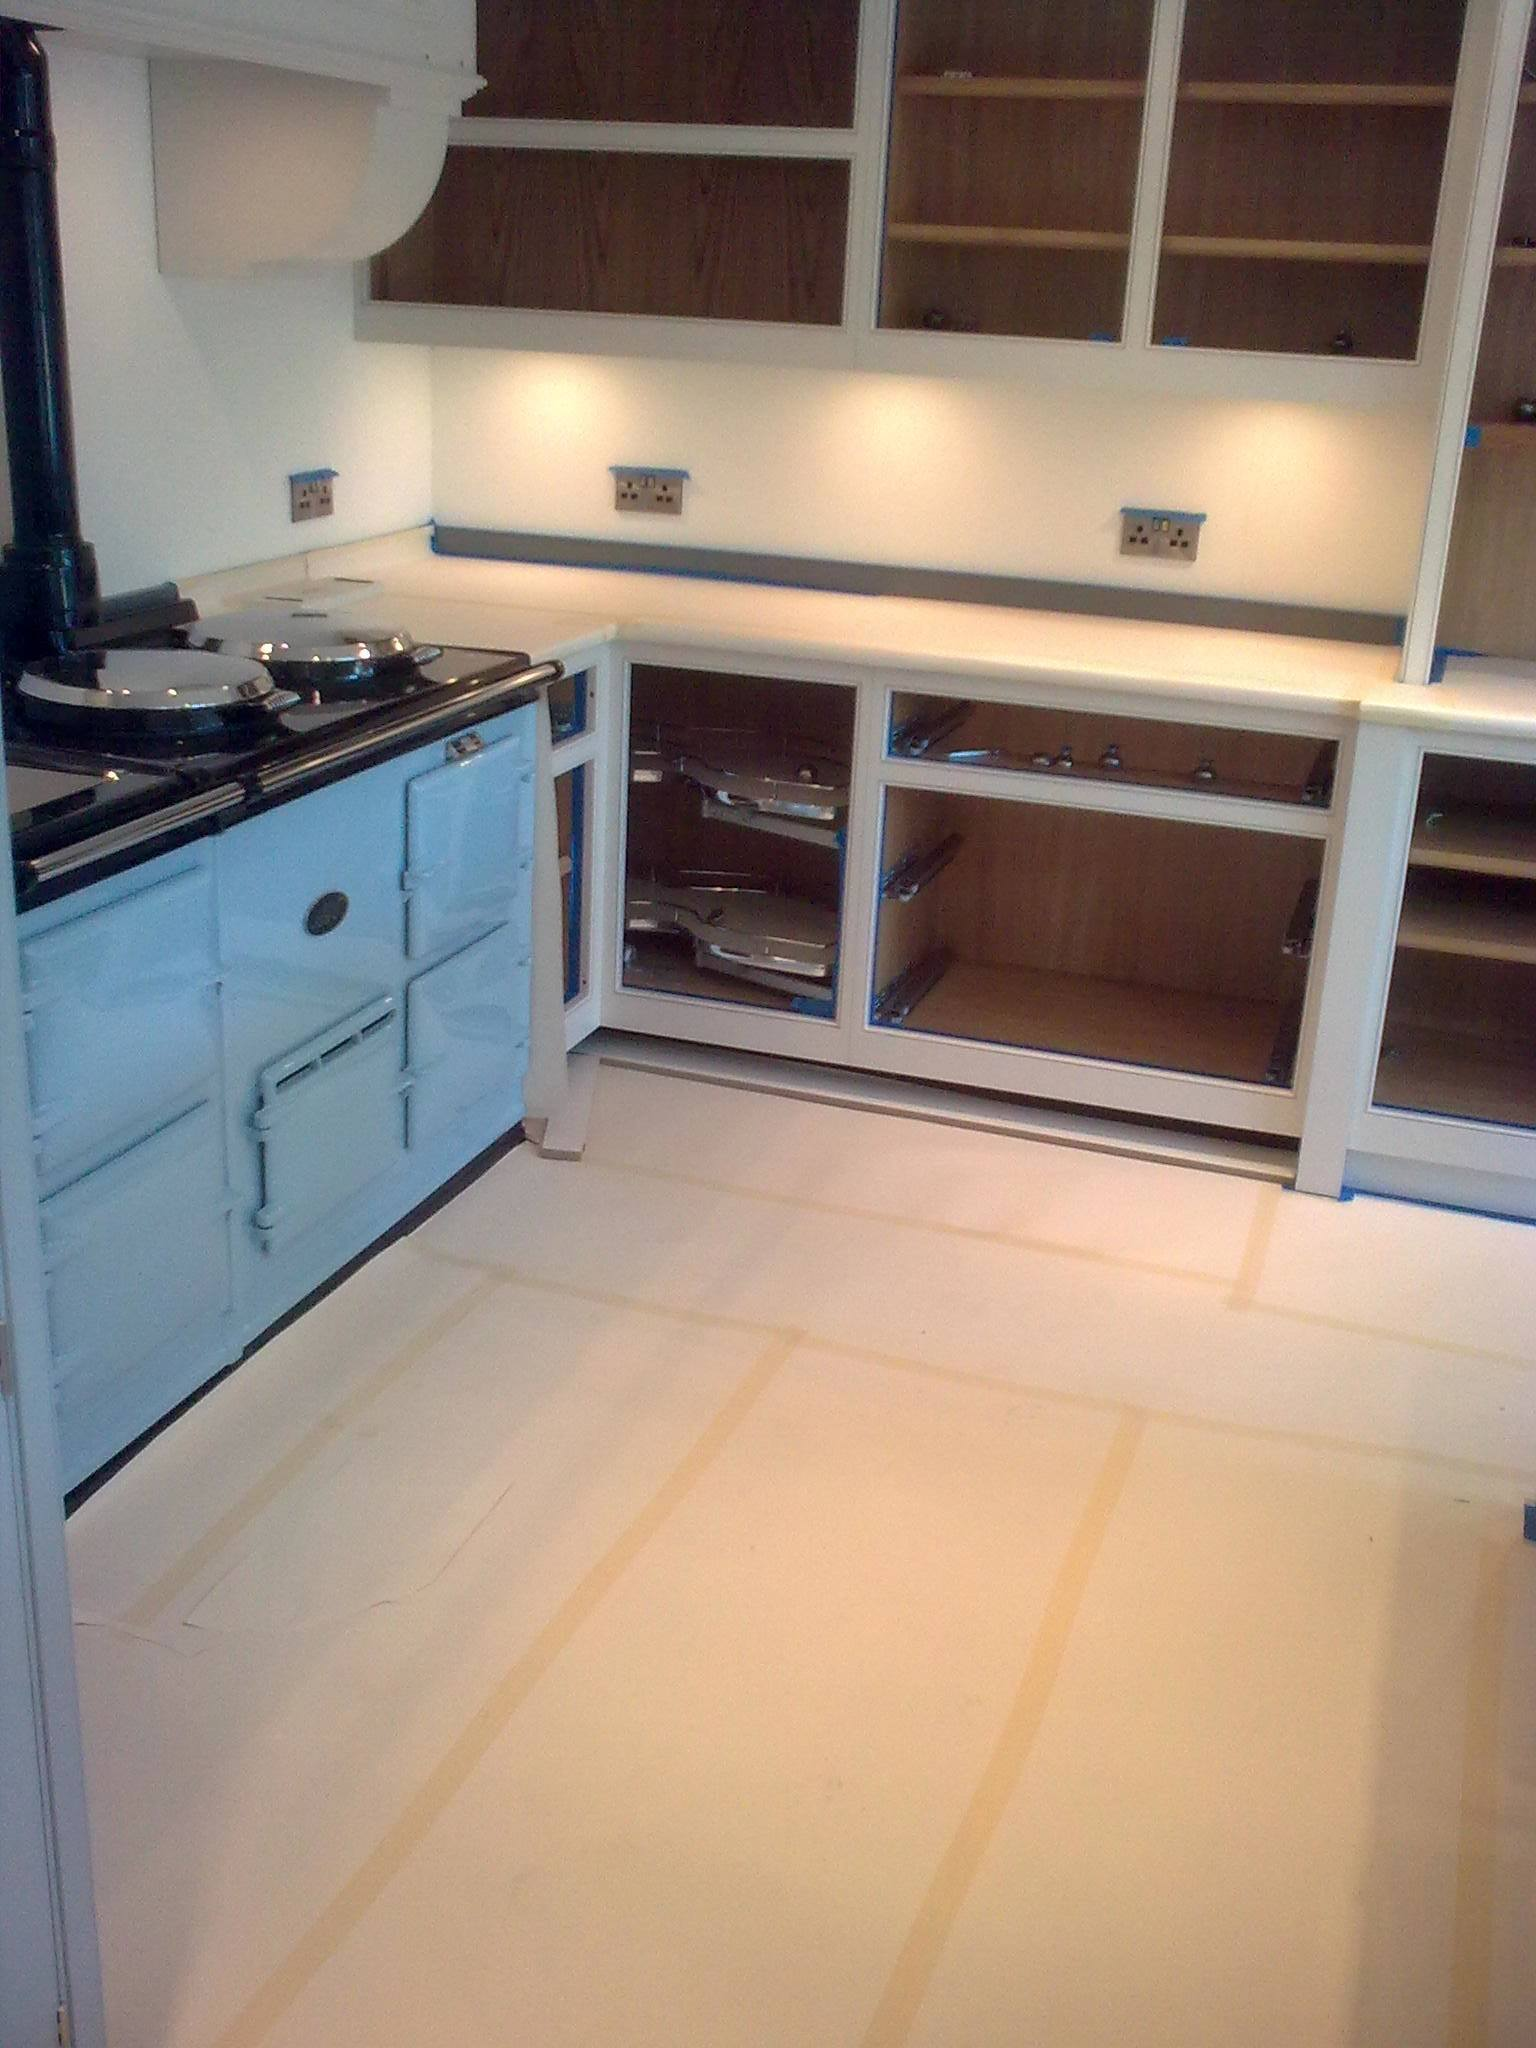 Bq It Kitchen Doors Refurbish A Kitchen The Options Traditional Painter